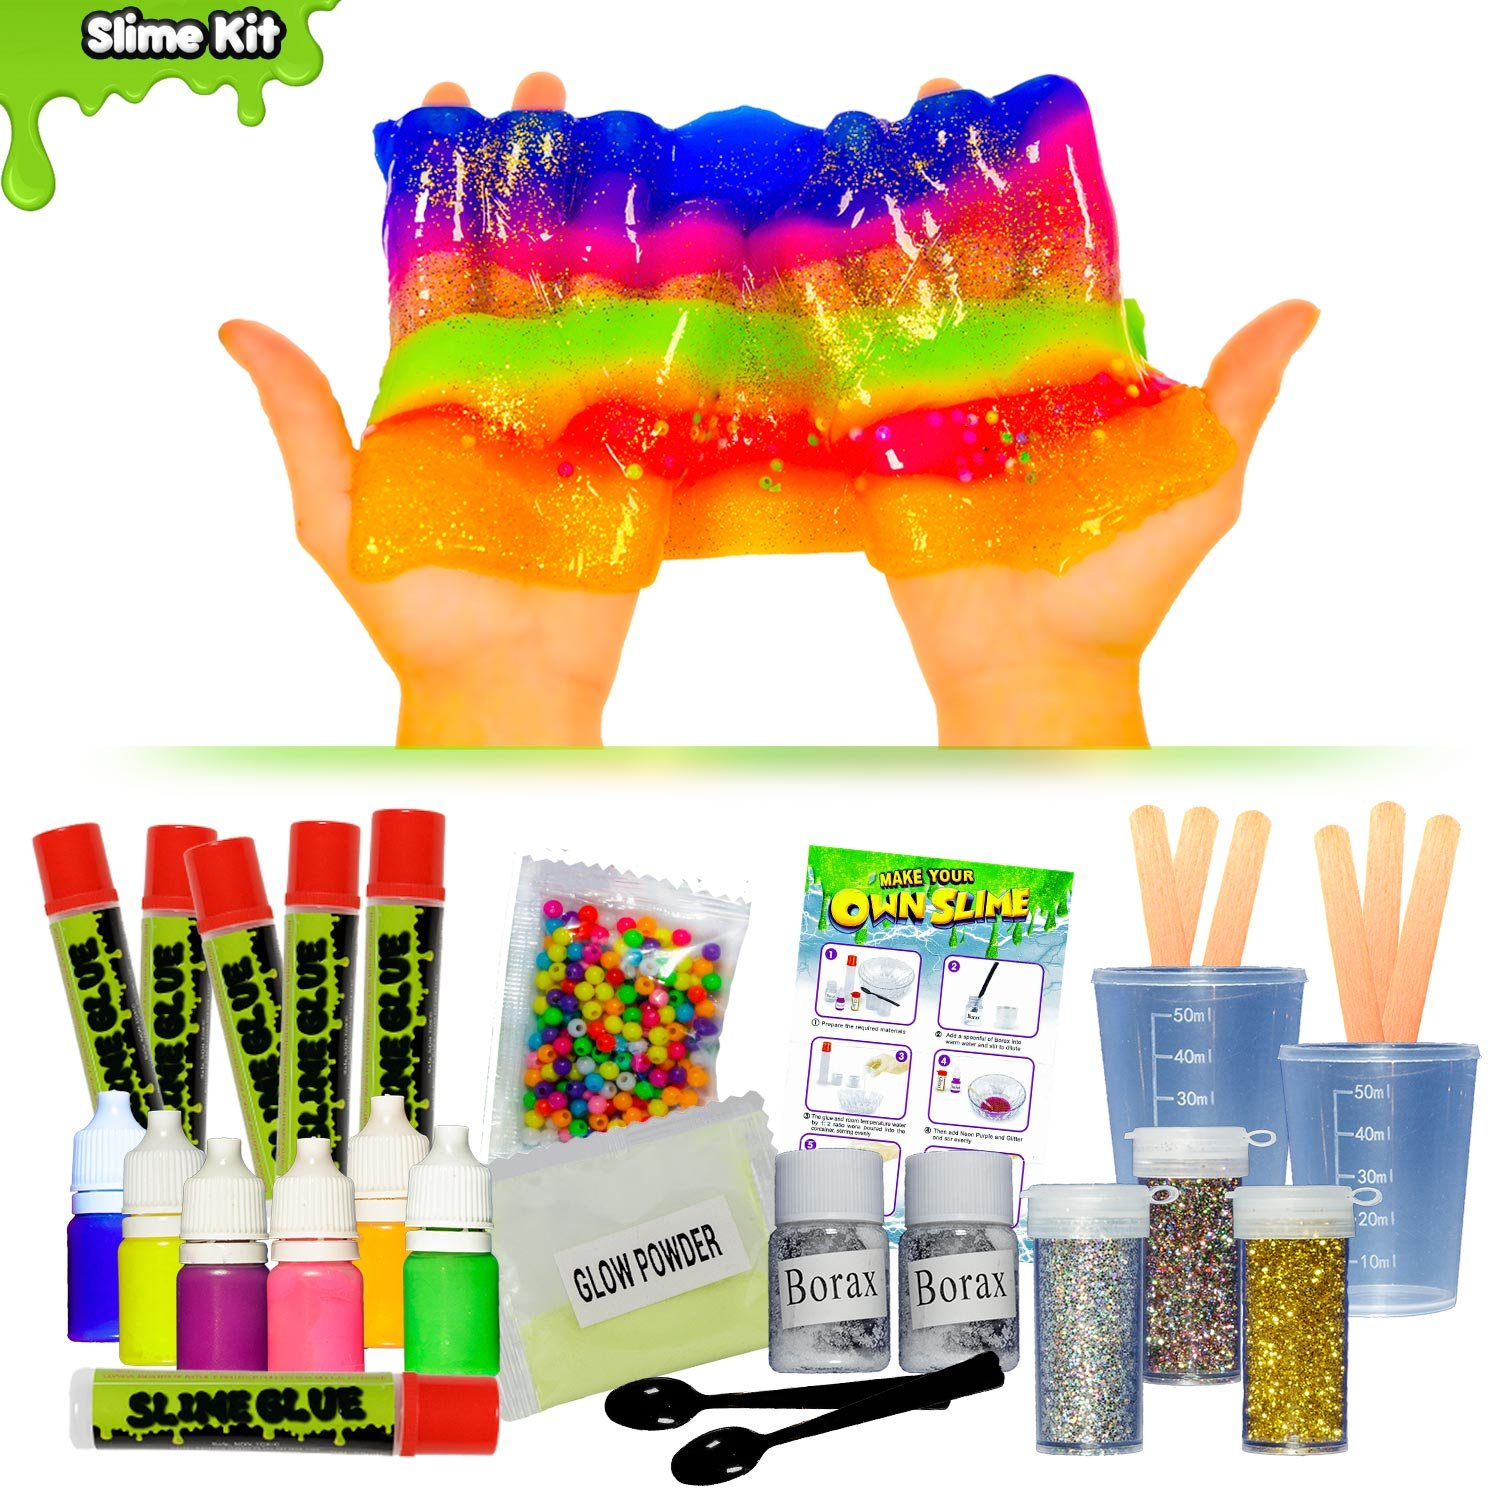 OzBSP Make Your Own Slime DIY Slime Kit - for Kids, Girls & Boys | Glow in the Dark Slime, Beads, Glitter & Neon Colored Crystal Slime | All you need to make 6 batches of Slime | Fun STEM Science Kit